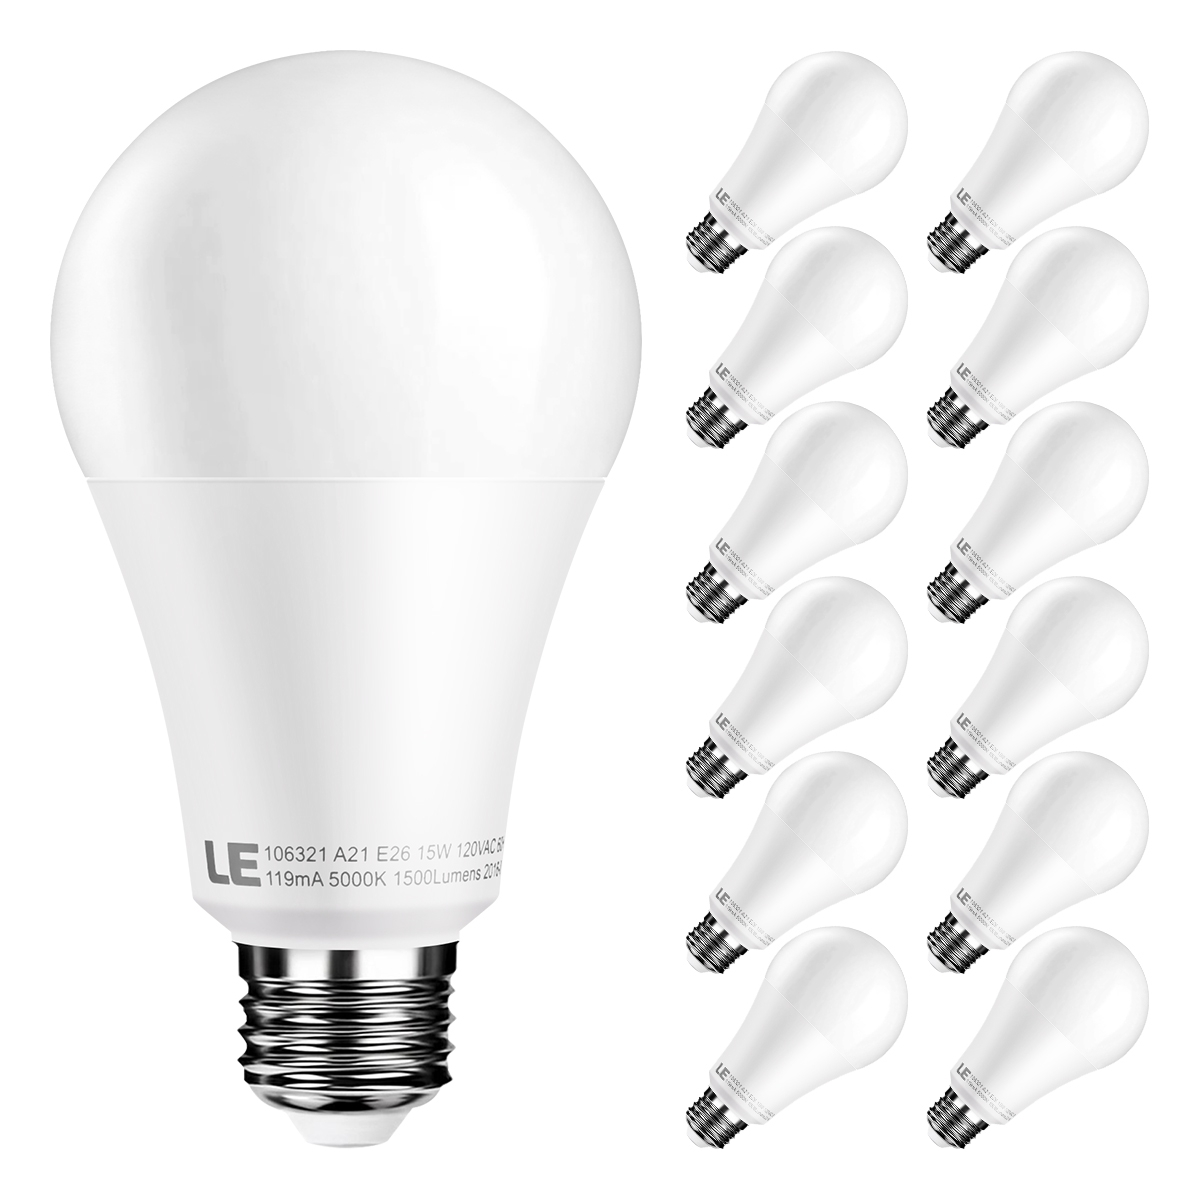 Lighting EVER A21 E26 15W Daylight White Dimmable LED Light Bulb, 100W Incandescent Bulbs Equiv, Pack of 12 Units